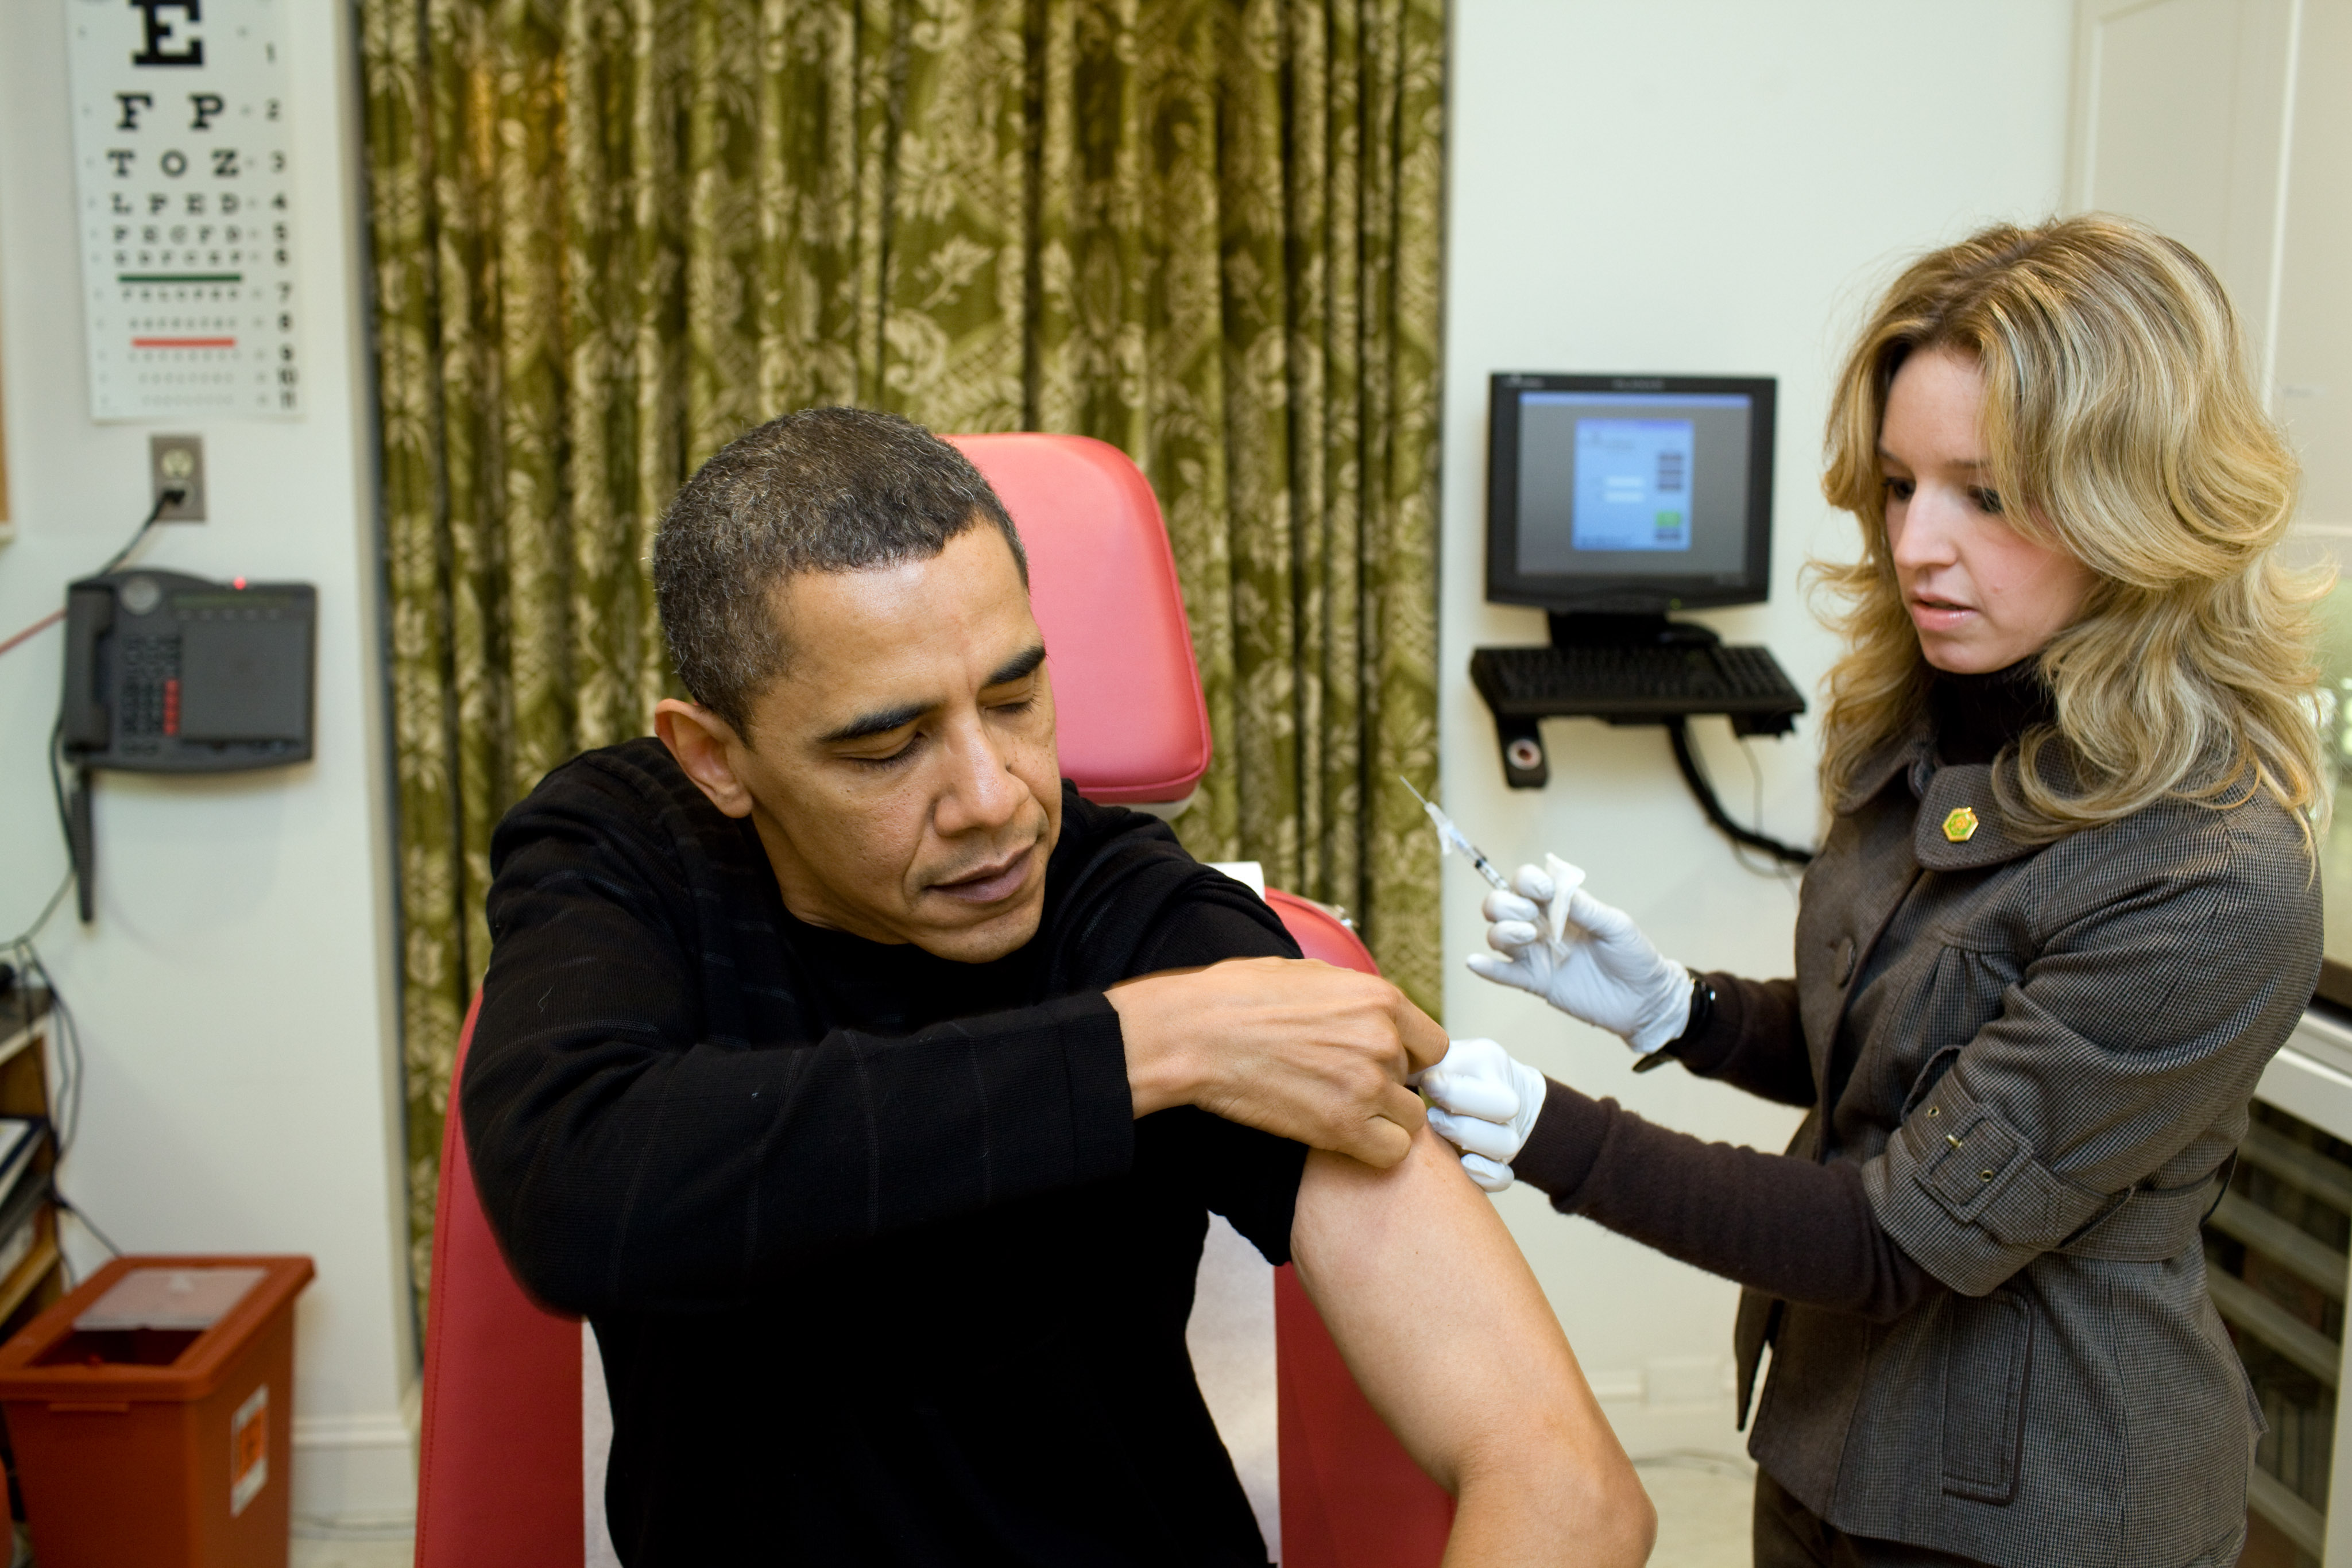 In this handout provided by the White House, A White House nurse prepares to administer the H1N1 vaccine to President Barack Obama at the White House on December 20, 2009 in Washington, DC.